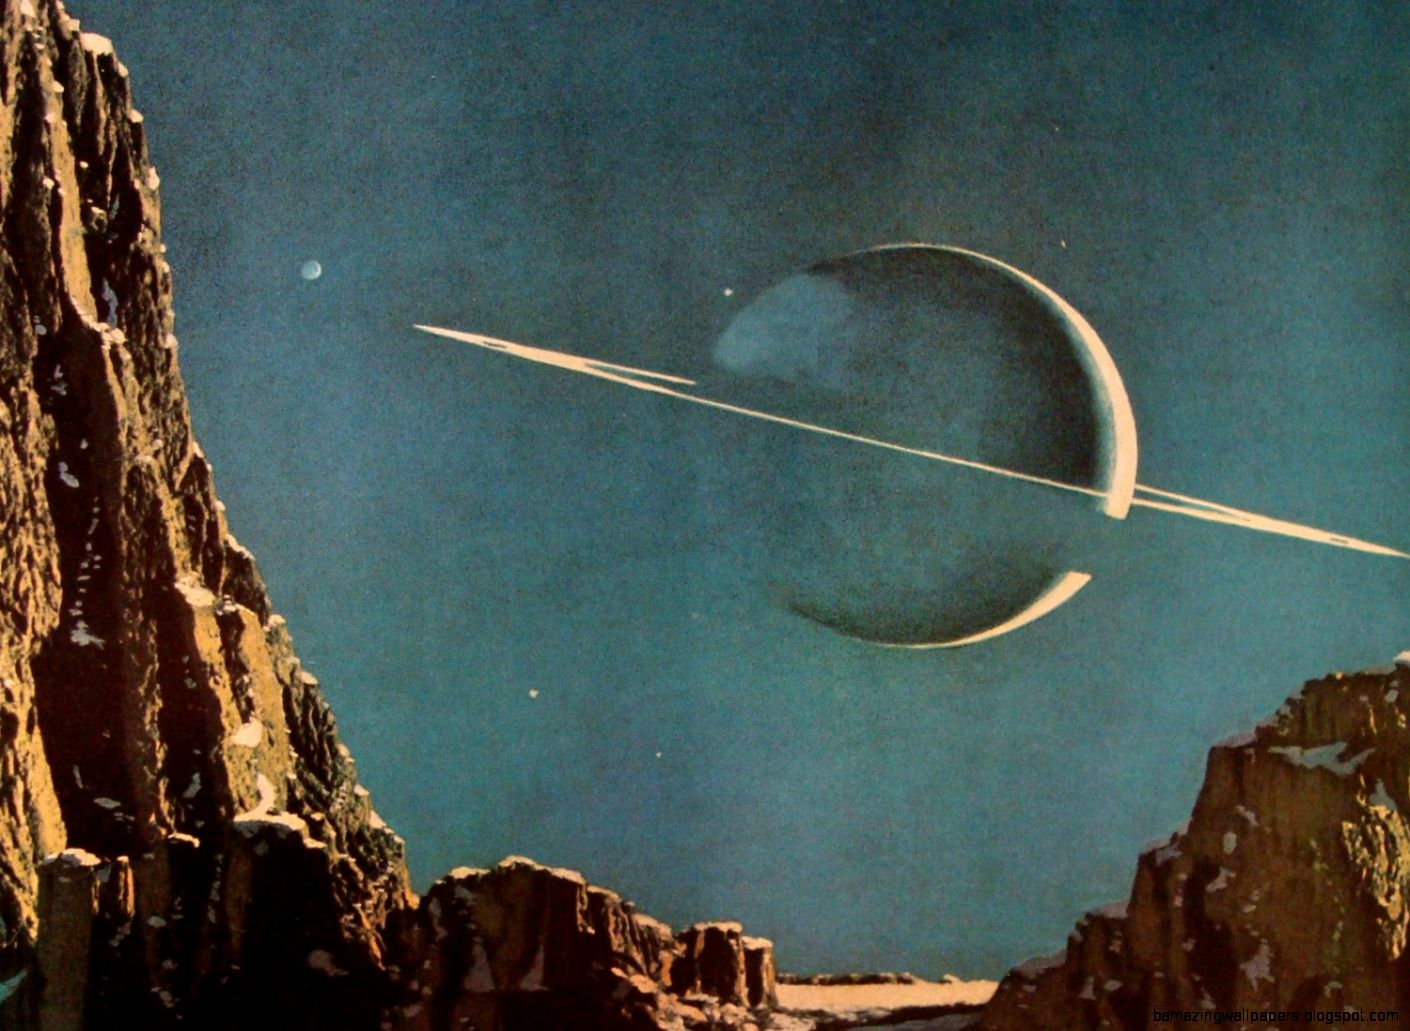 Retro outer space art amazing wallpapers - Vintage space wallpaper ...